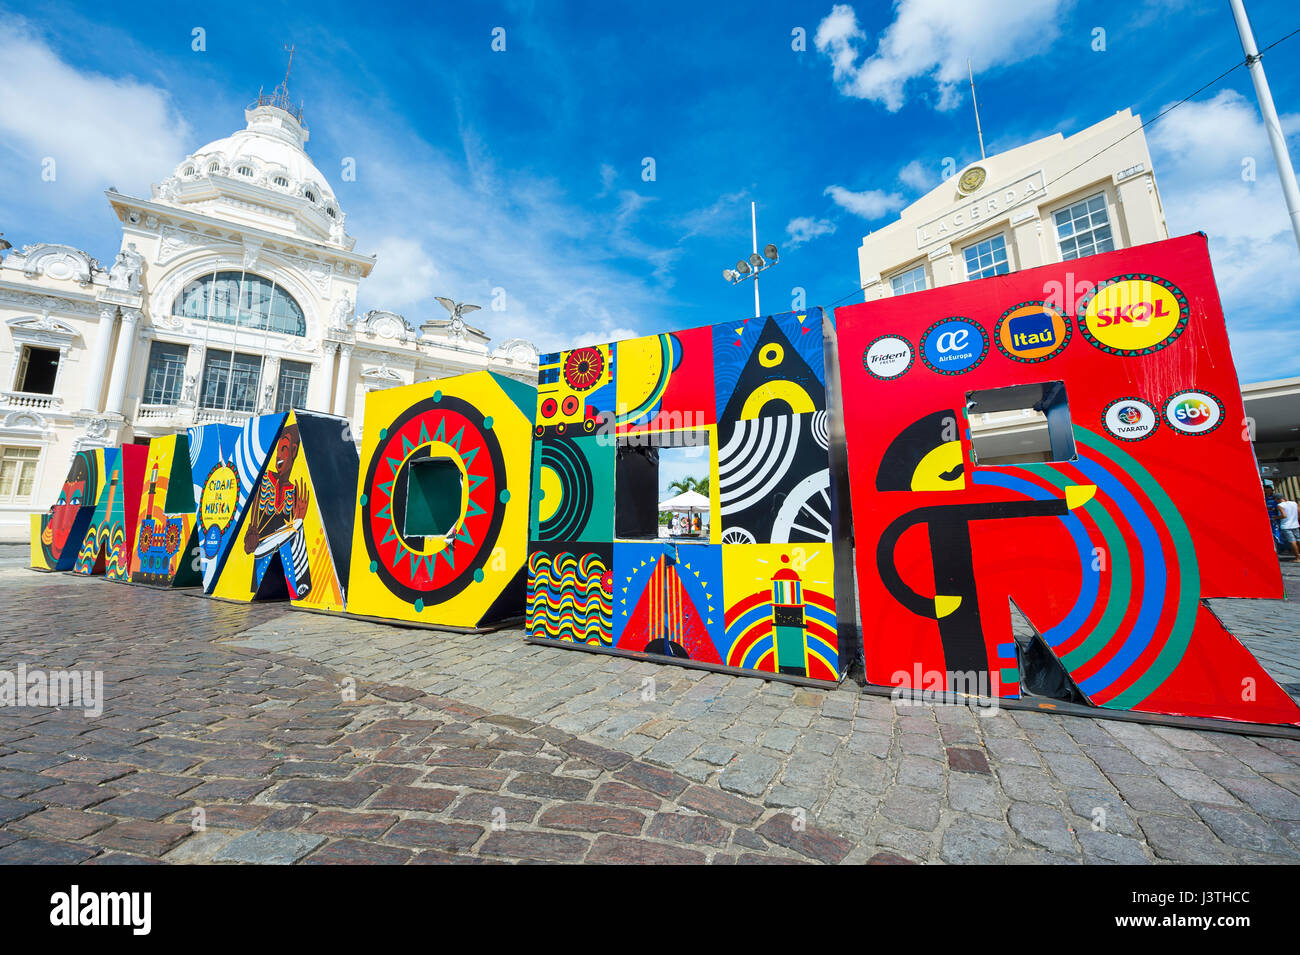 SALVADOR, BRAZIL - MARCH 9, 2017: Brightly colored sign spells out Salvador in all capital letters at the entrance - Stock Image